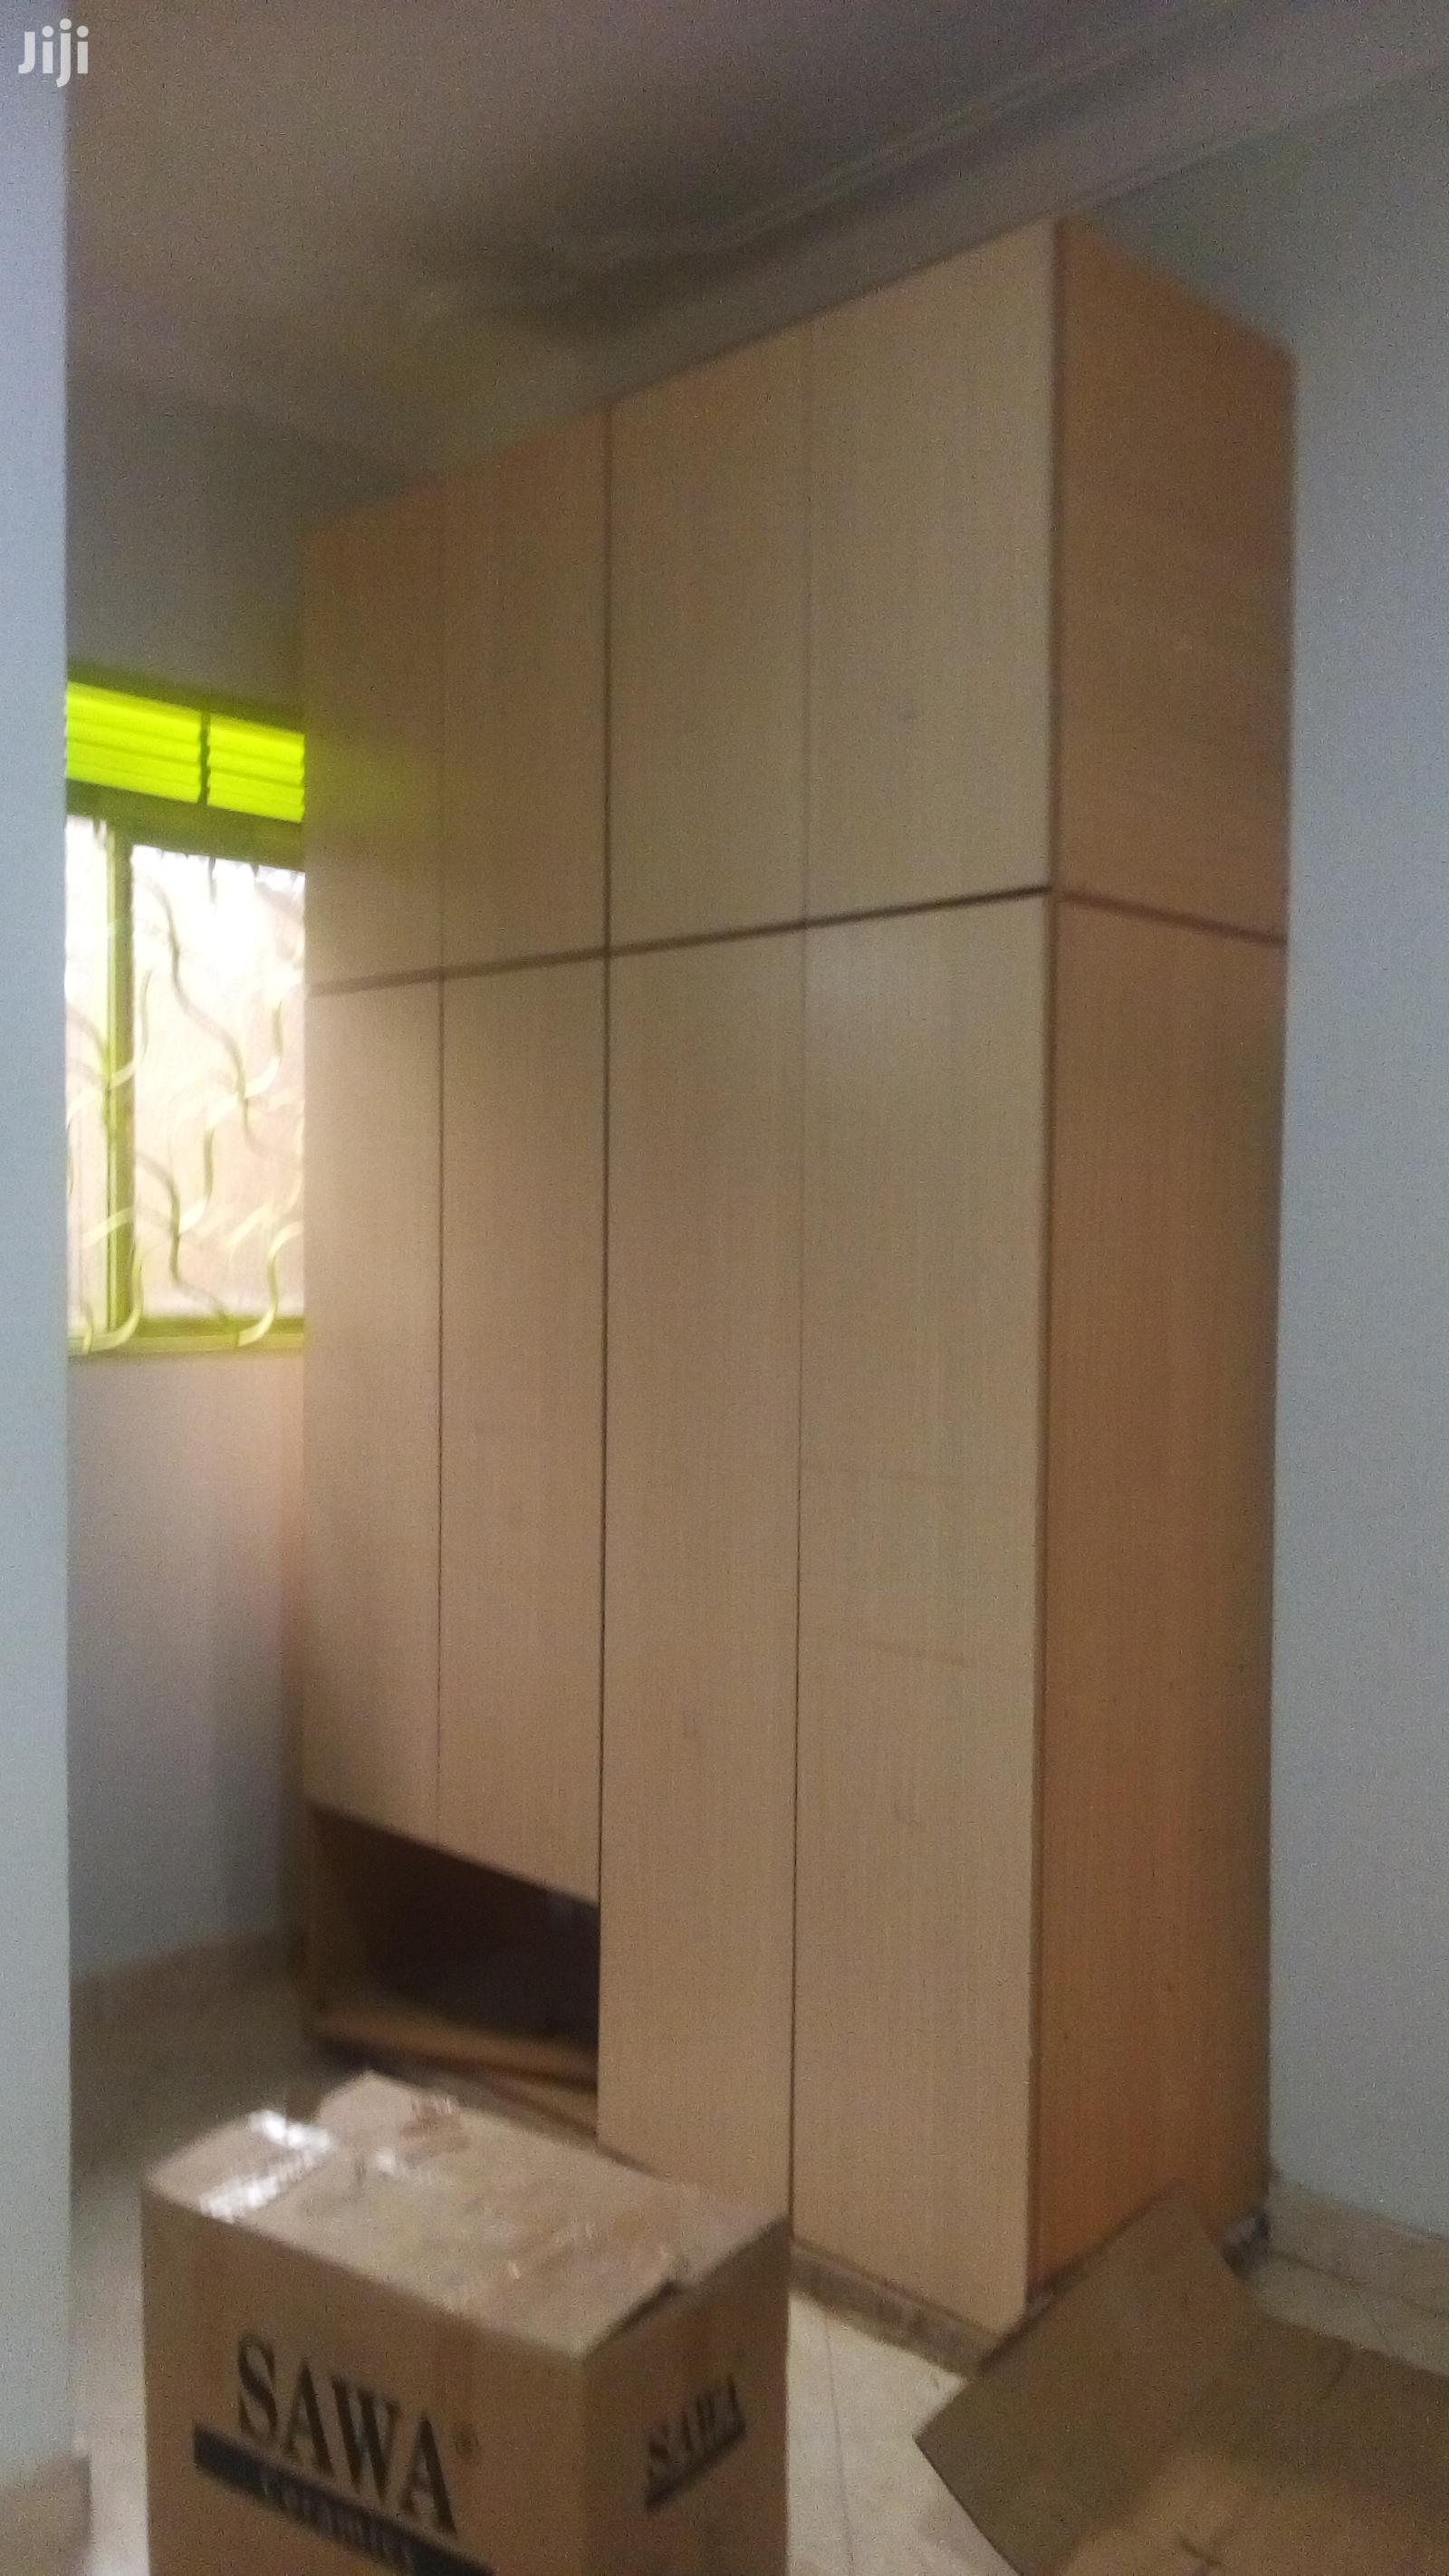 Brand New Double Room Self Contained In Kyaliwajjala For Rent | Houses & Apartments For Rent for sale in Kampala, Central Region, Uganda